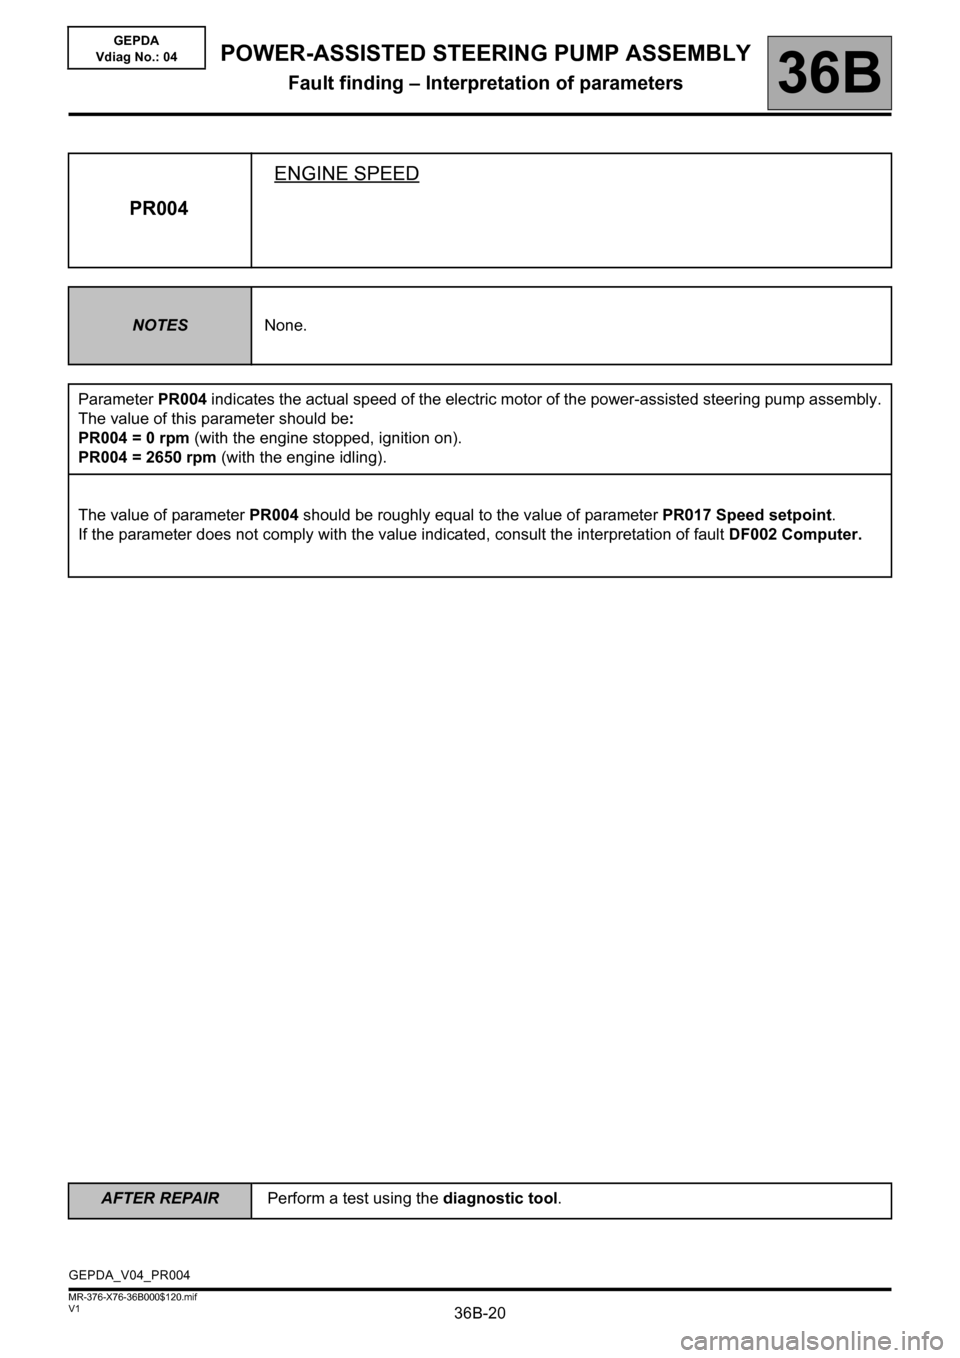 RENAULT KANGOO 2013 X61 / 2.G Power Steering Pump Assembly Workshop Manual, Page 20